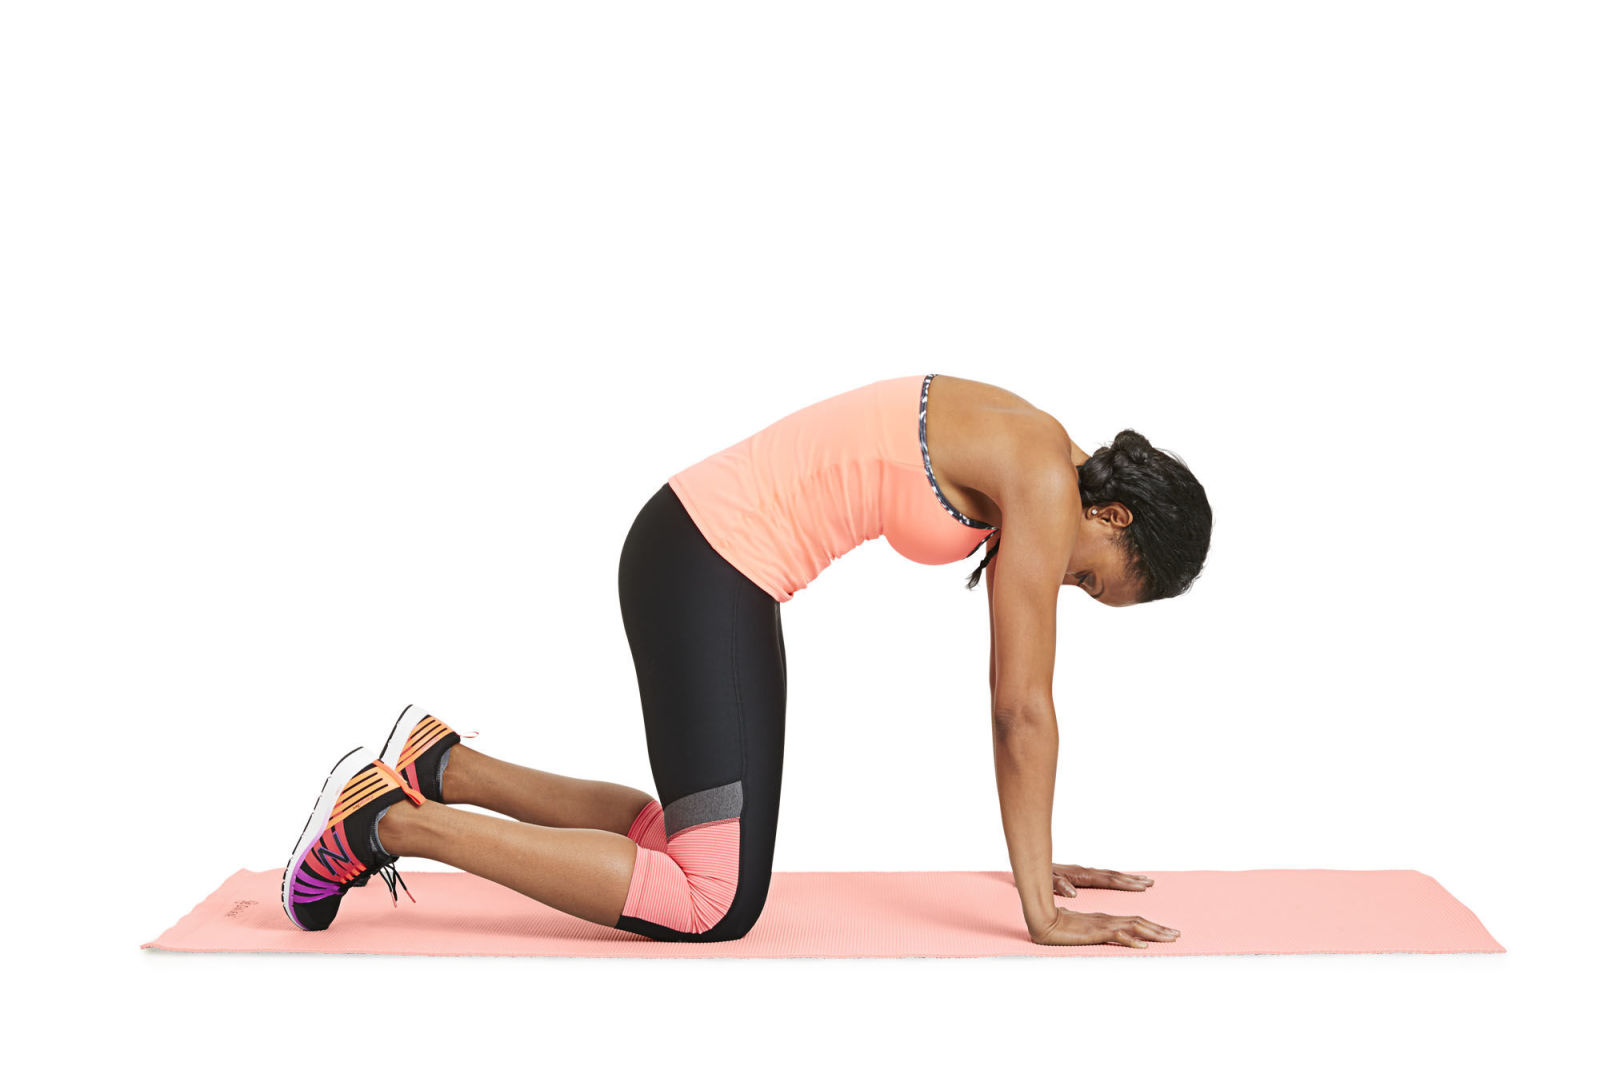 Soothing Stretches Exercises To Loosen Muscles